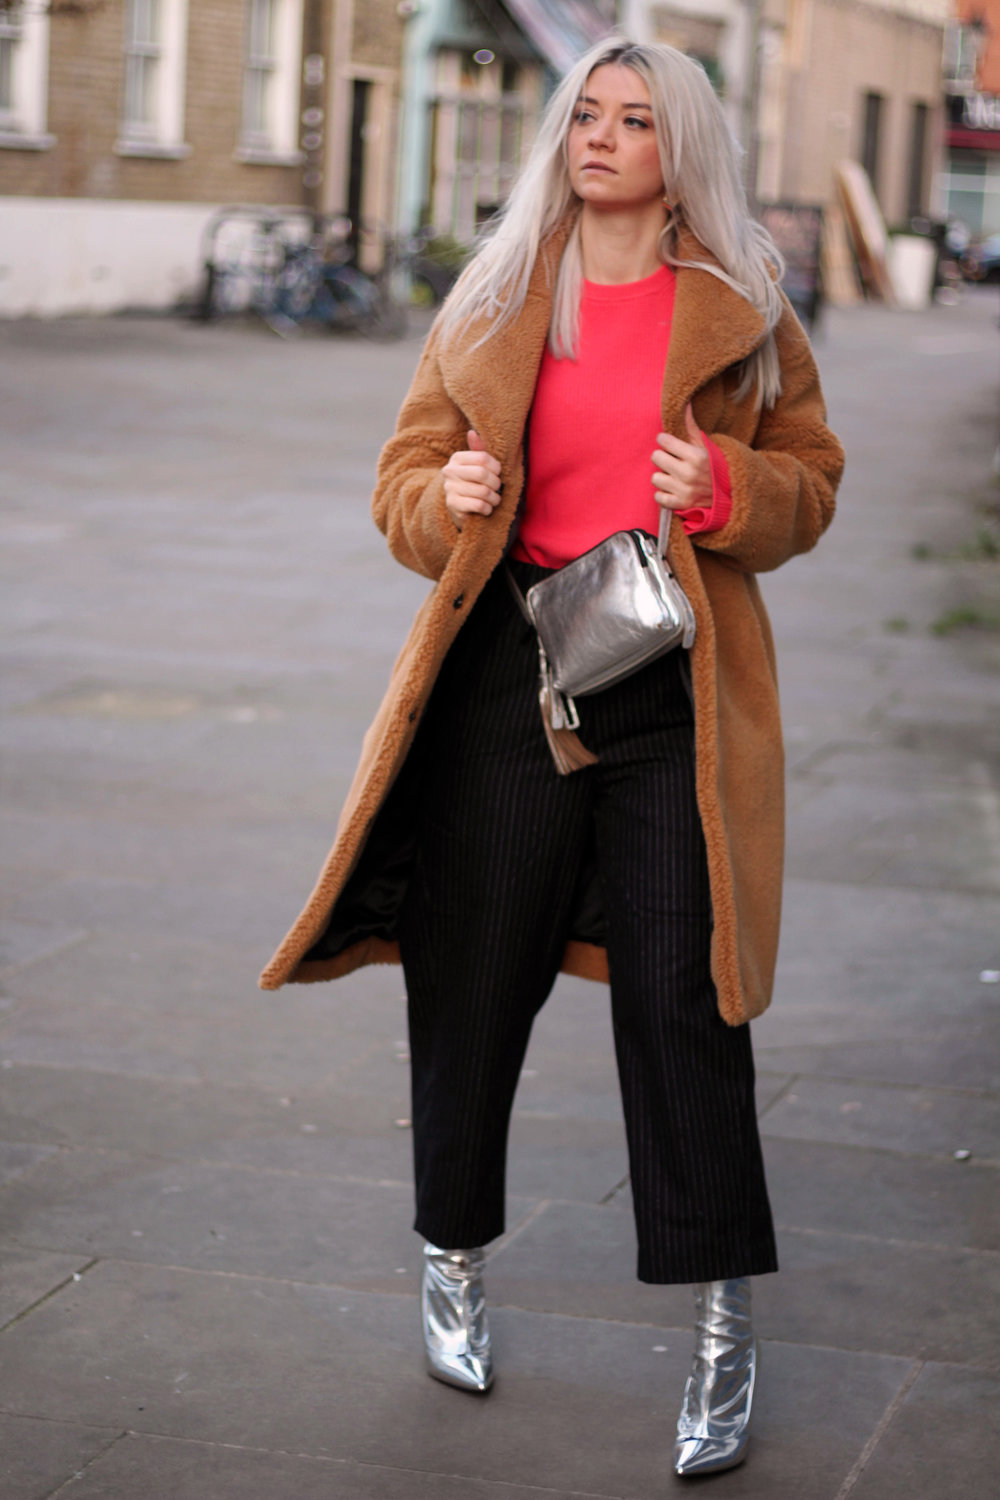 coral knitted michael kors top, pinstripe weekday trousers, silver metallic boots, teddy bear coat, northern magpie 5